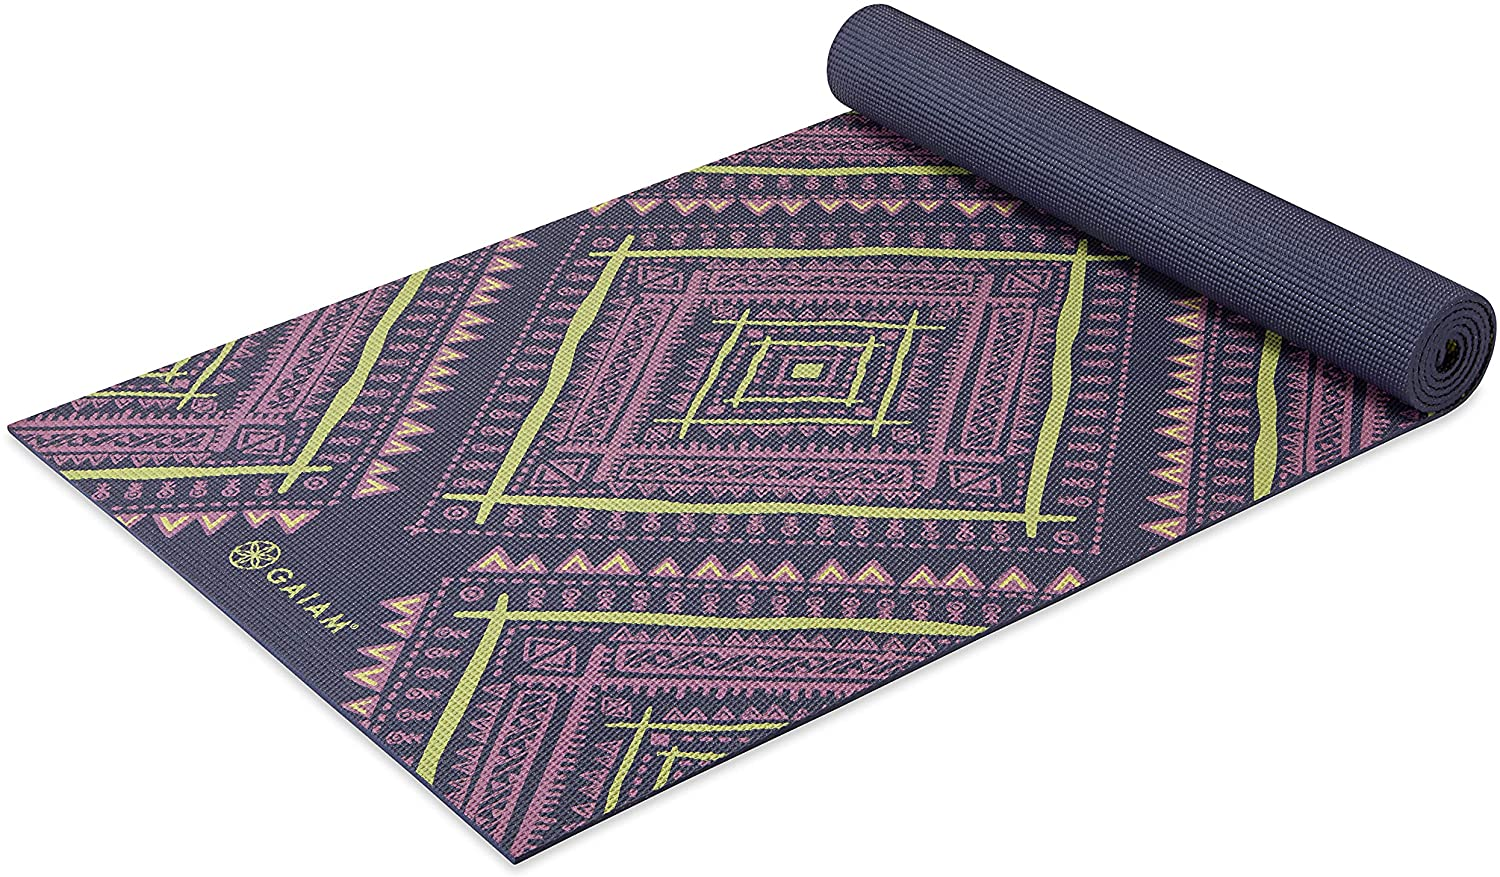 5mm Thick Non Slip Exercise & Fitness Mat  Tropical Dusk Navajo